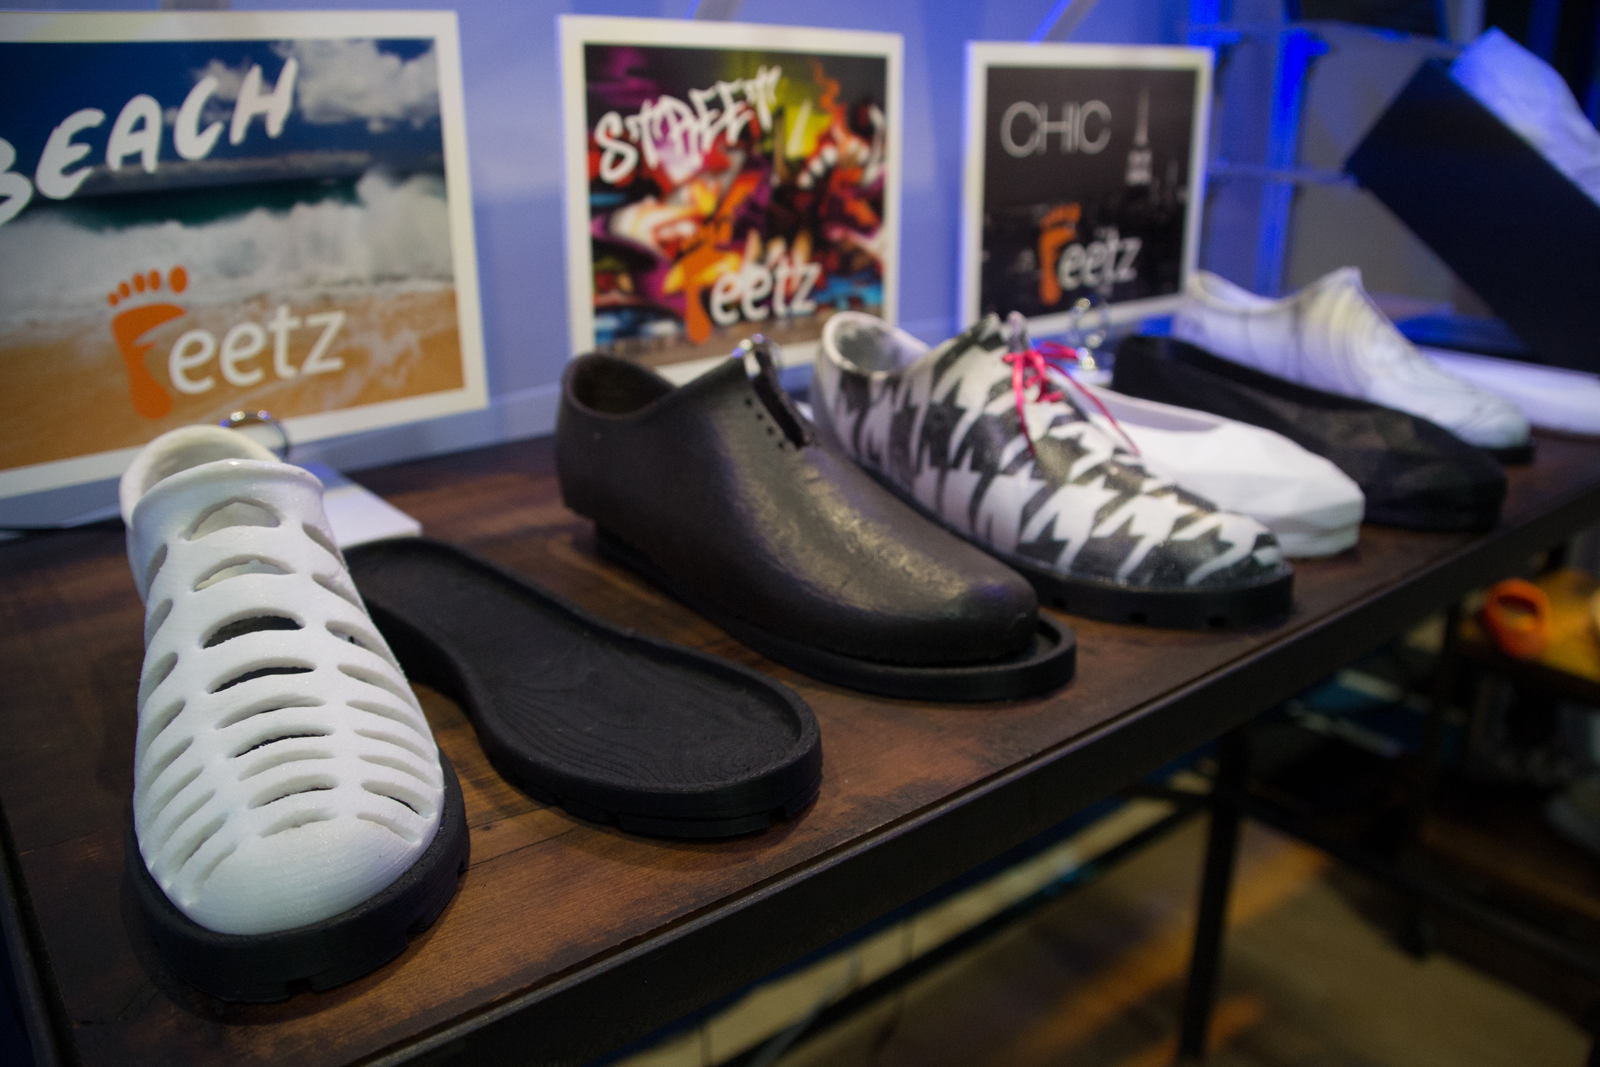 Feetz 3D printed shoe prototypes